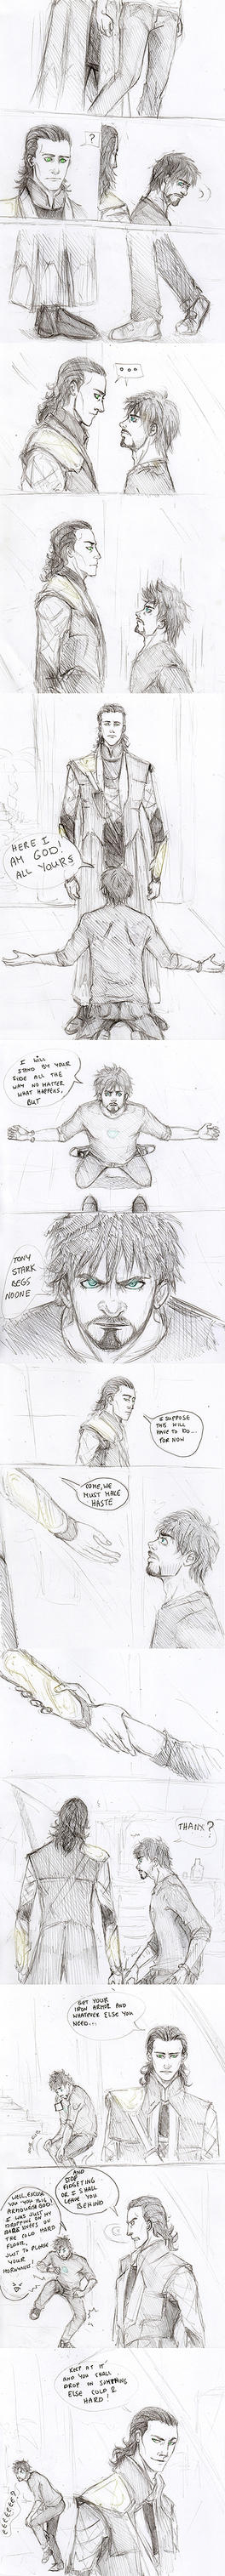 Tony Stark goes Renegade by Sanzo-Sinclaire